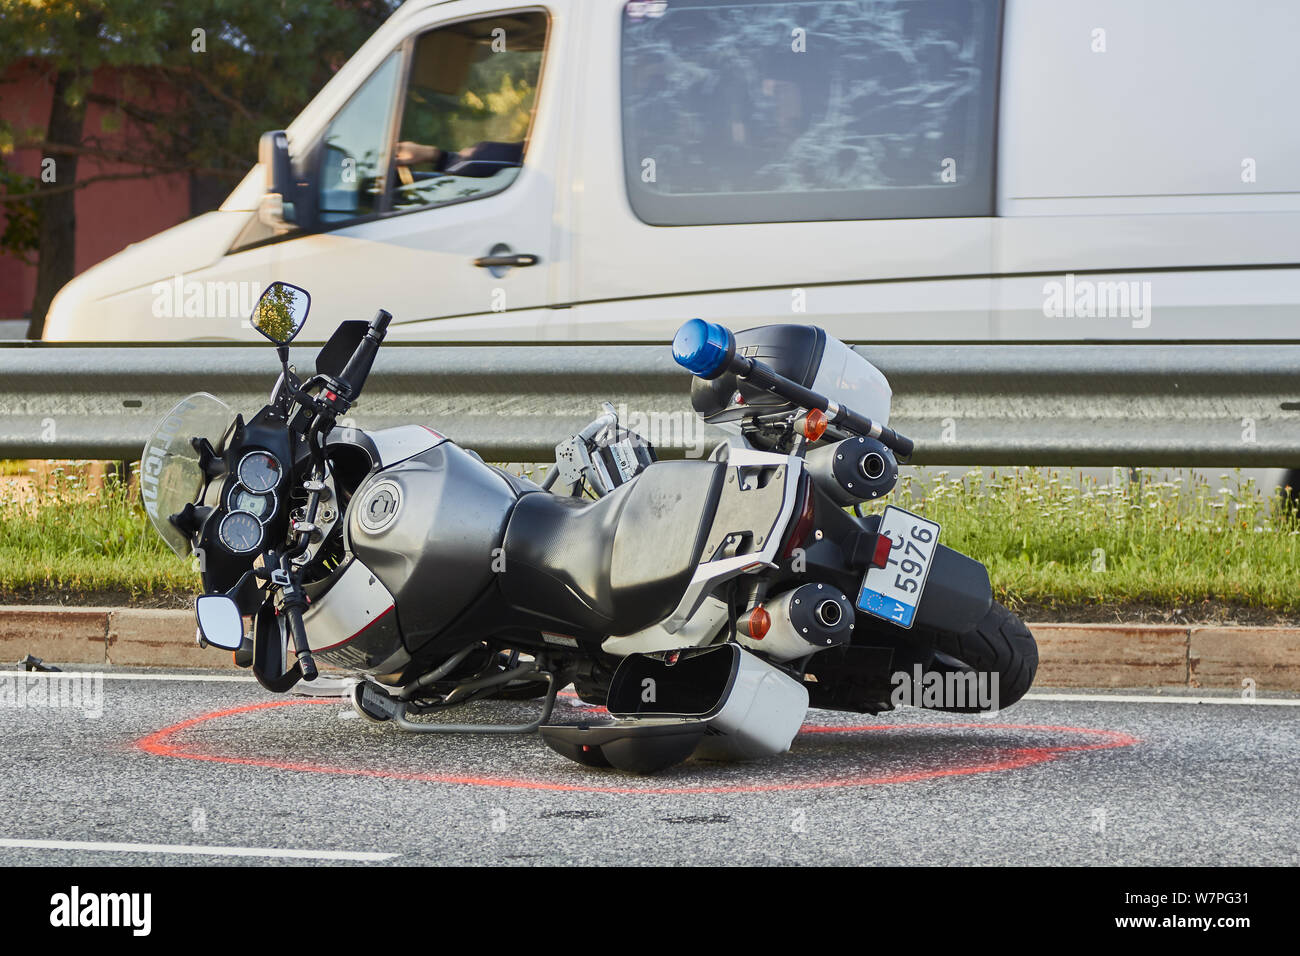 Motorcycle Road Accident Stock Photos & Motorcycle Road